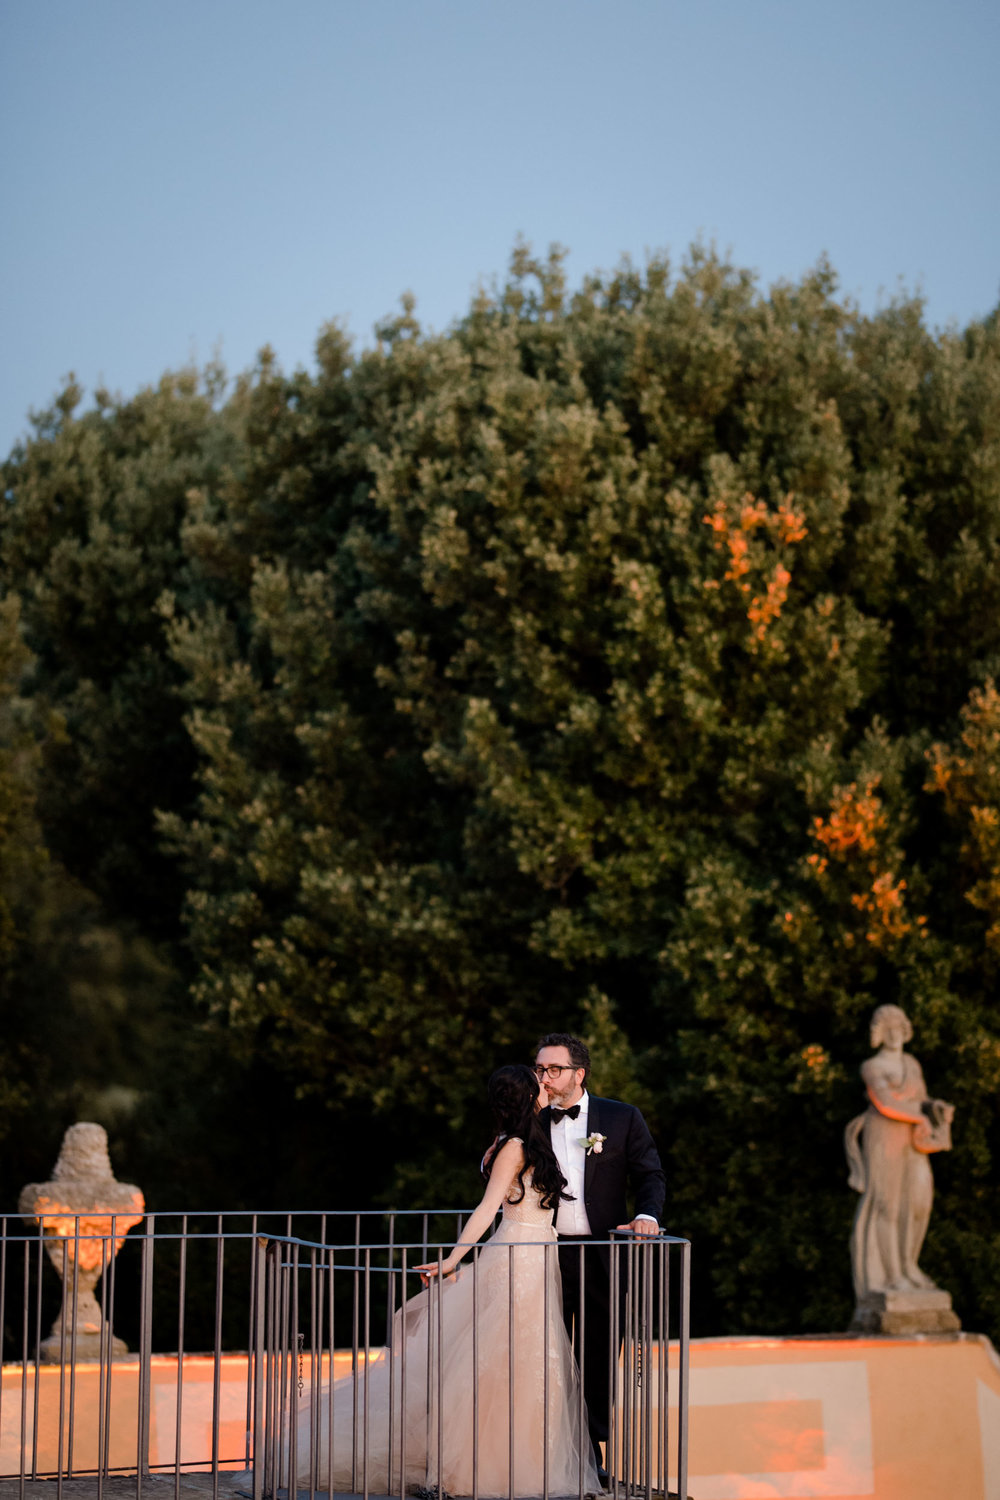 villa-gamberaia-florence-italy-destination-wedding-73.jpg